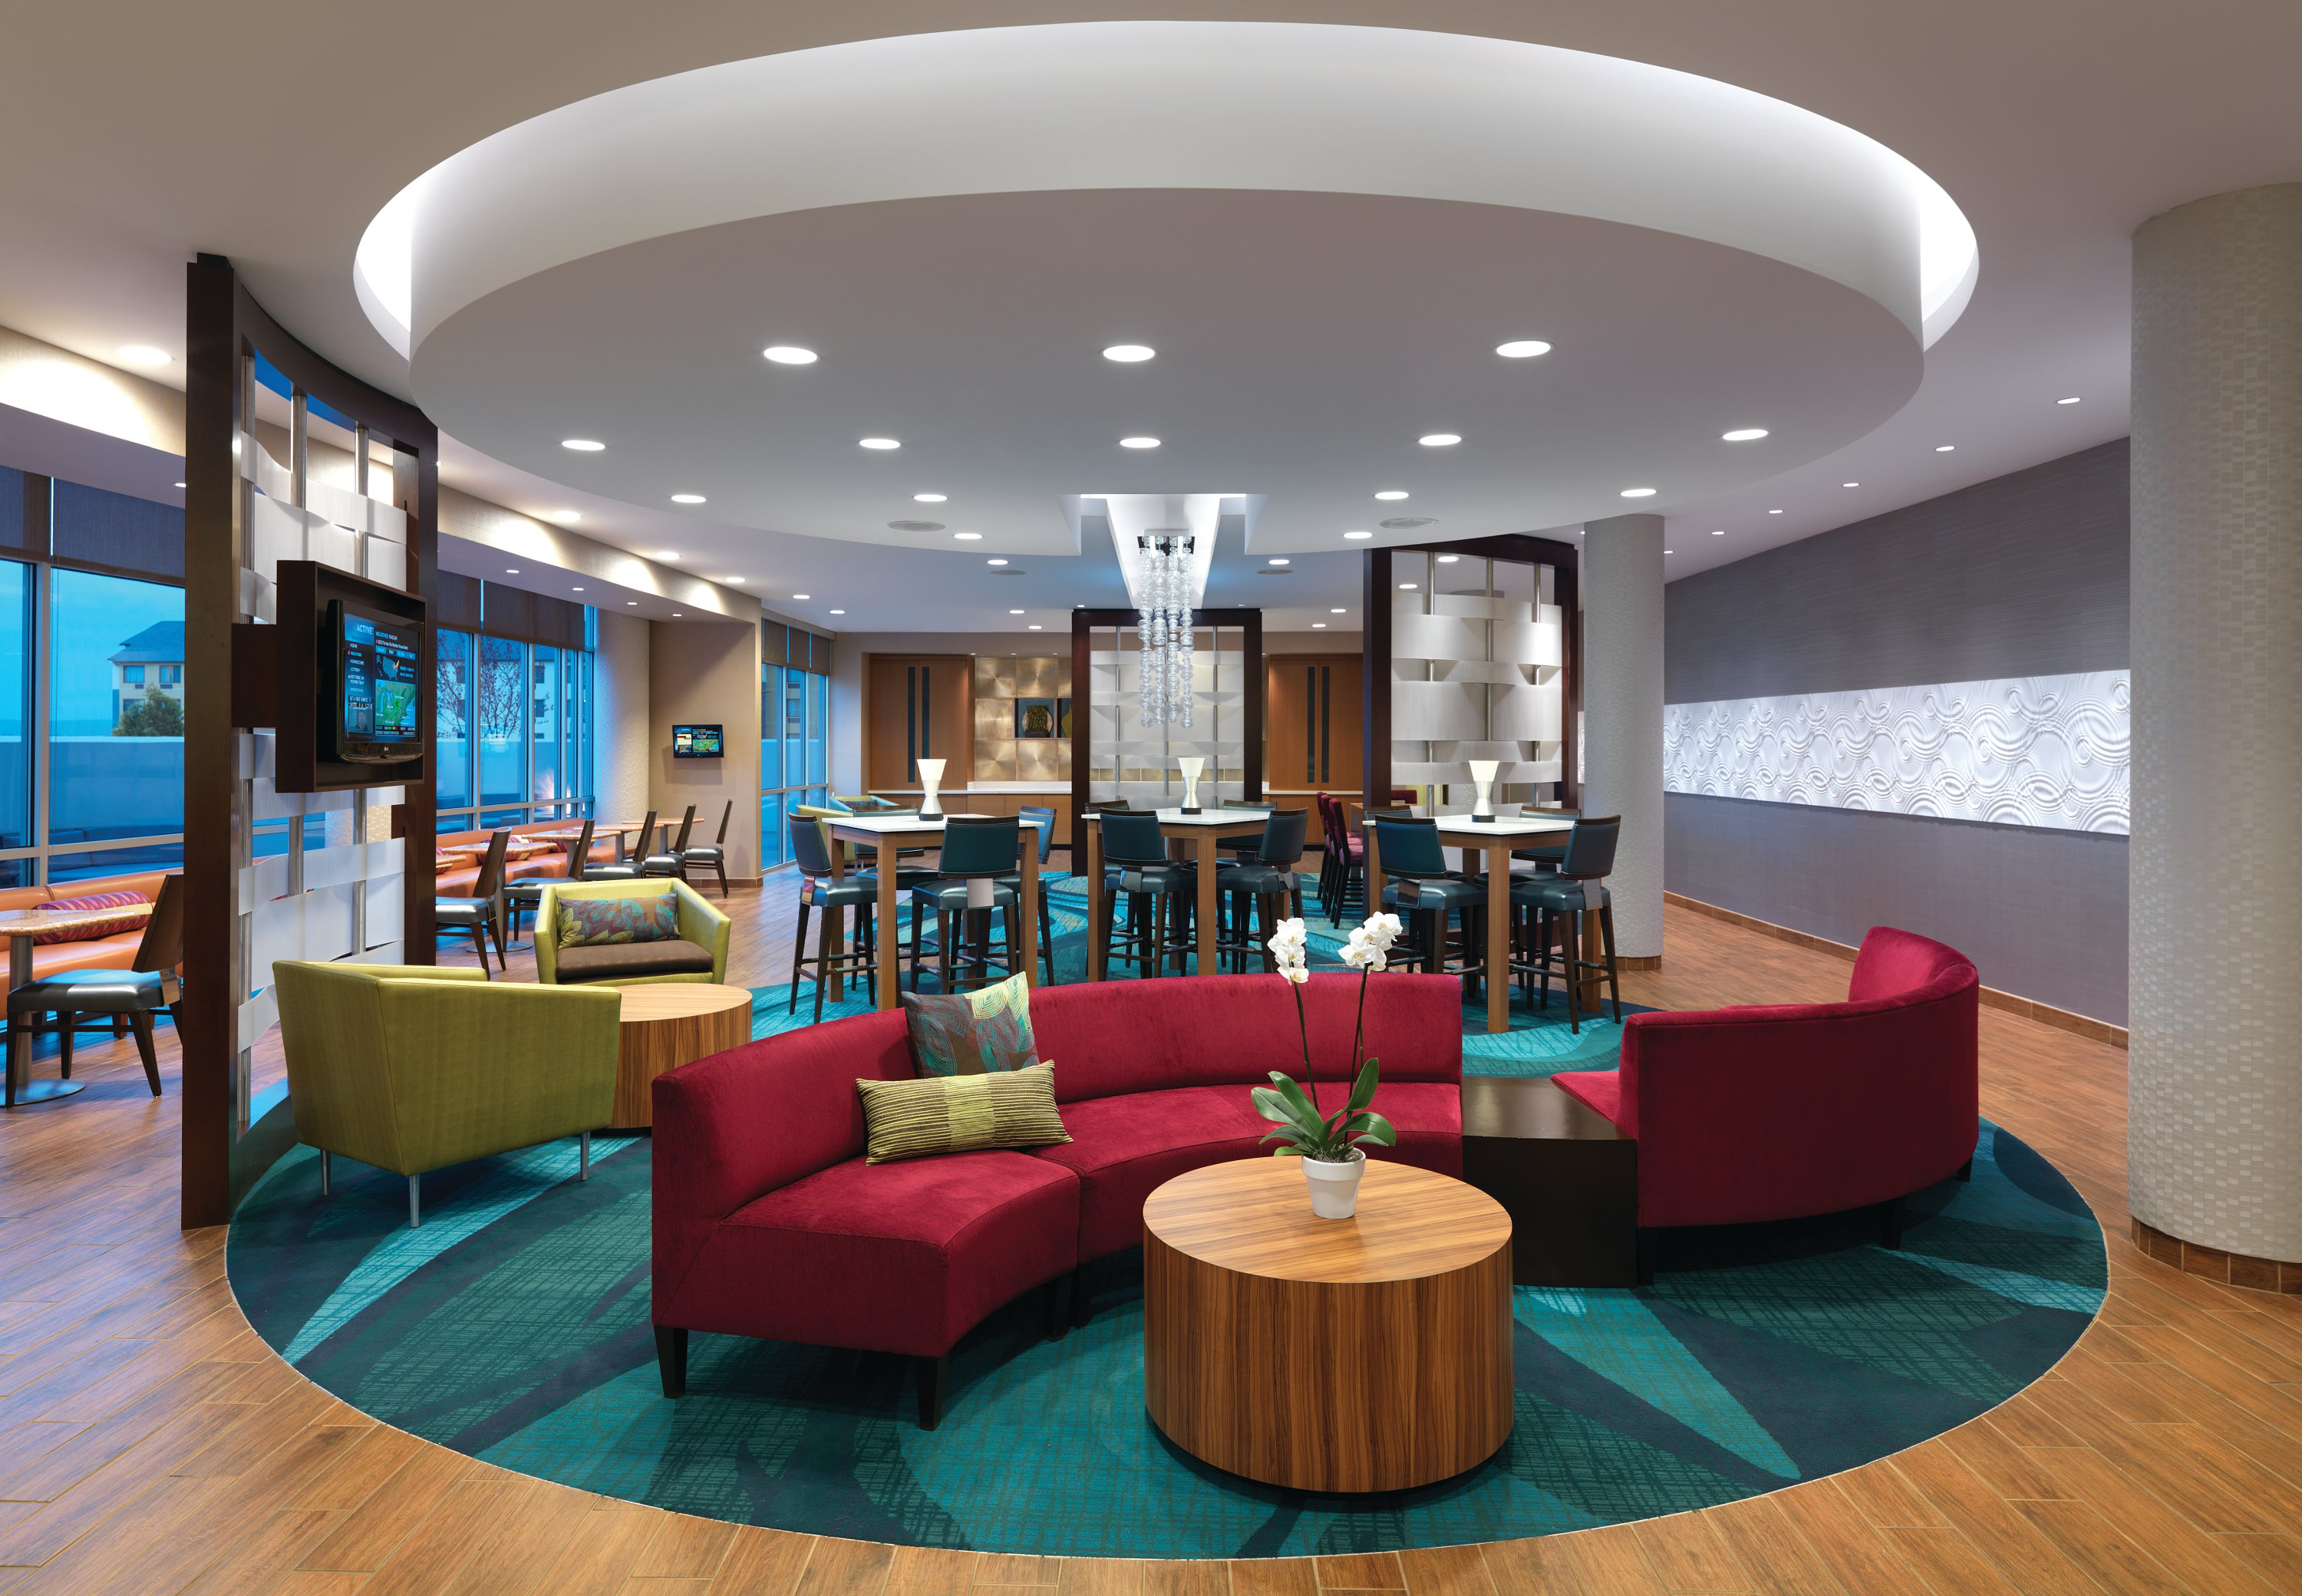 SpringHill Suites by Marriott Denver Tech Center image 1